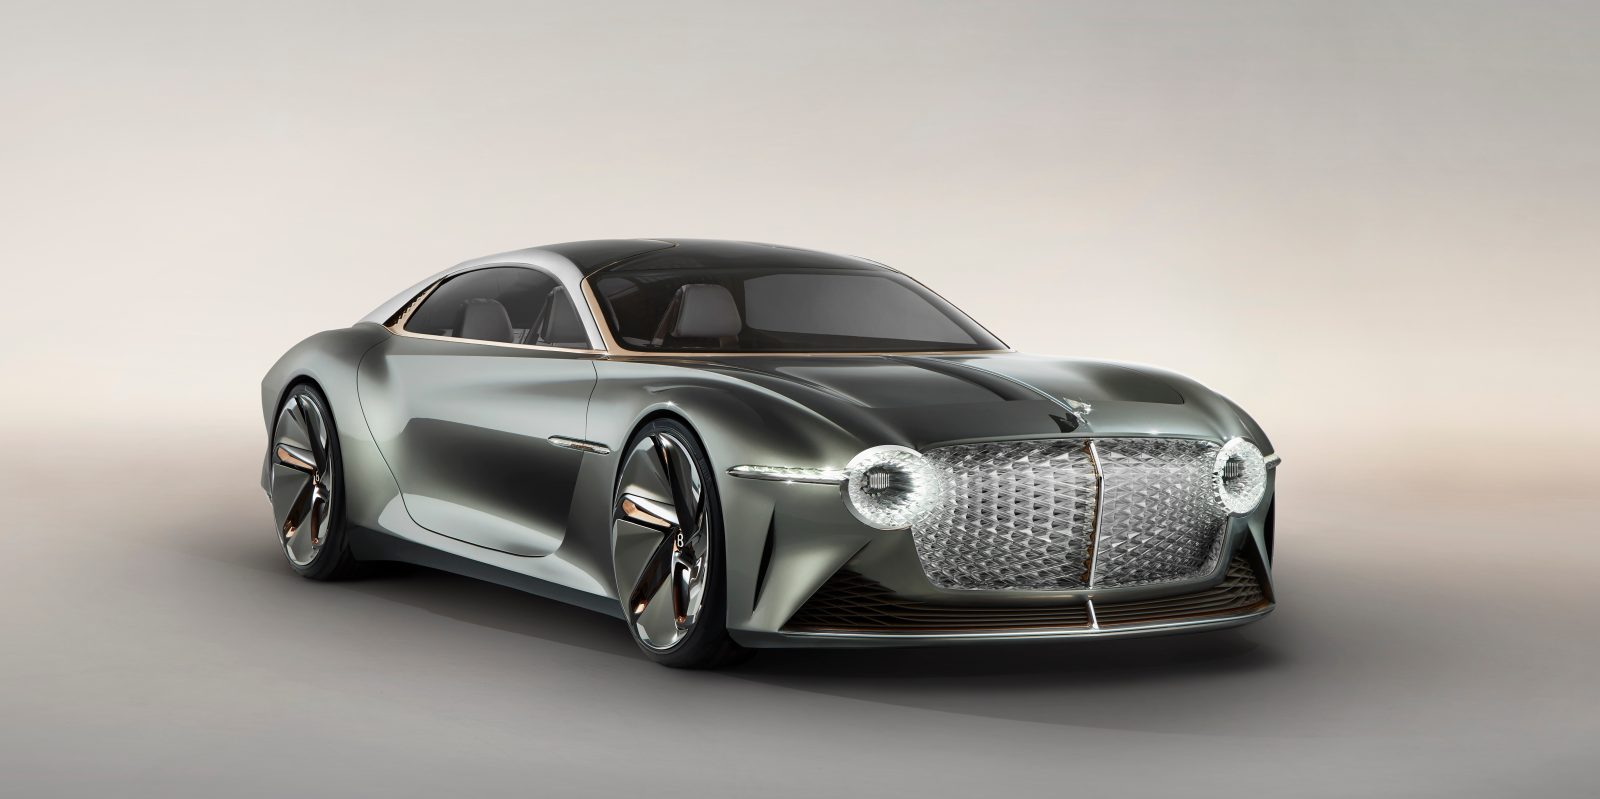 Bentley reveals its slick all-electric EXP 100 GT concept car which imagines driving in 2035